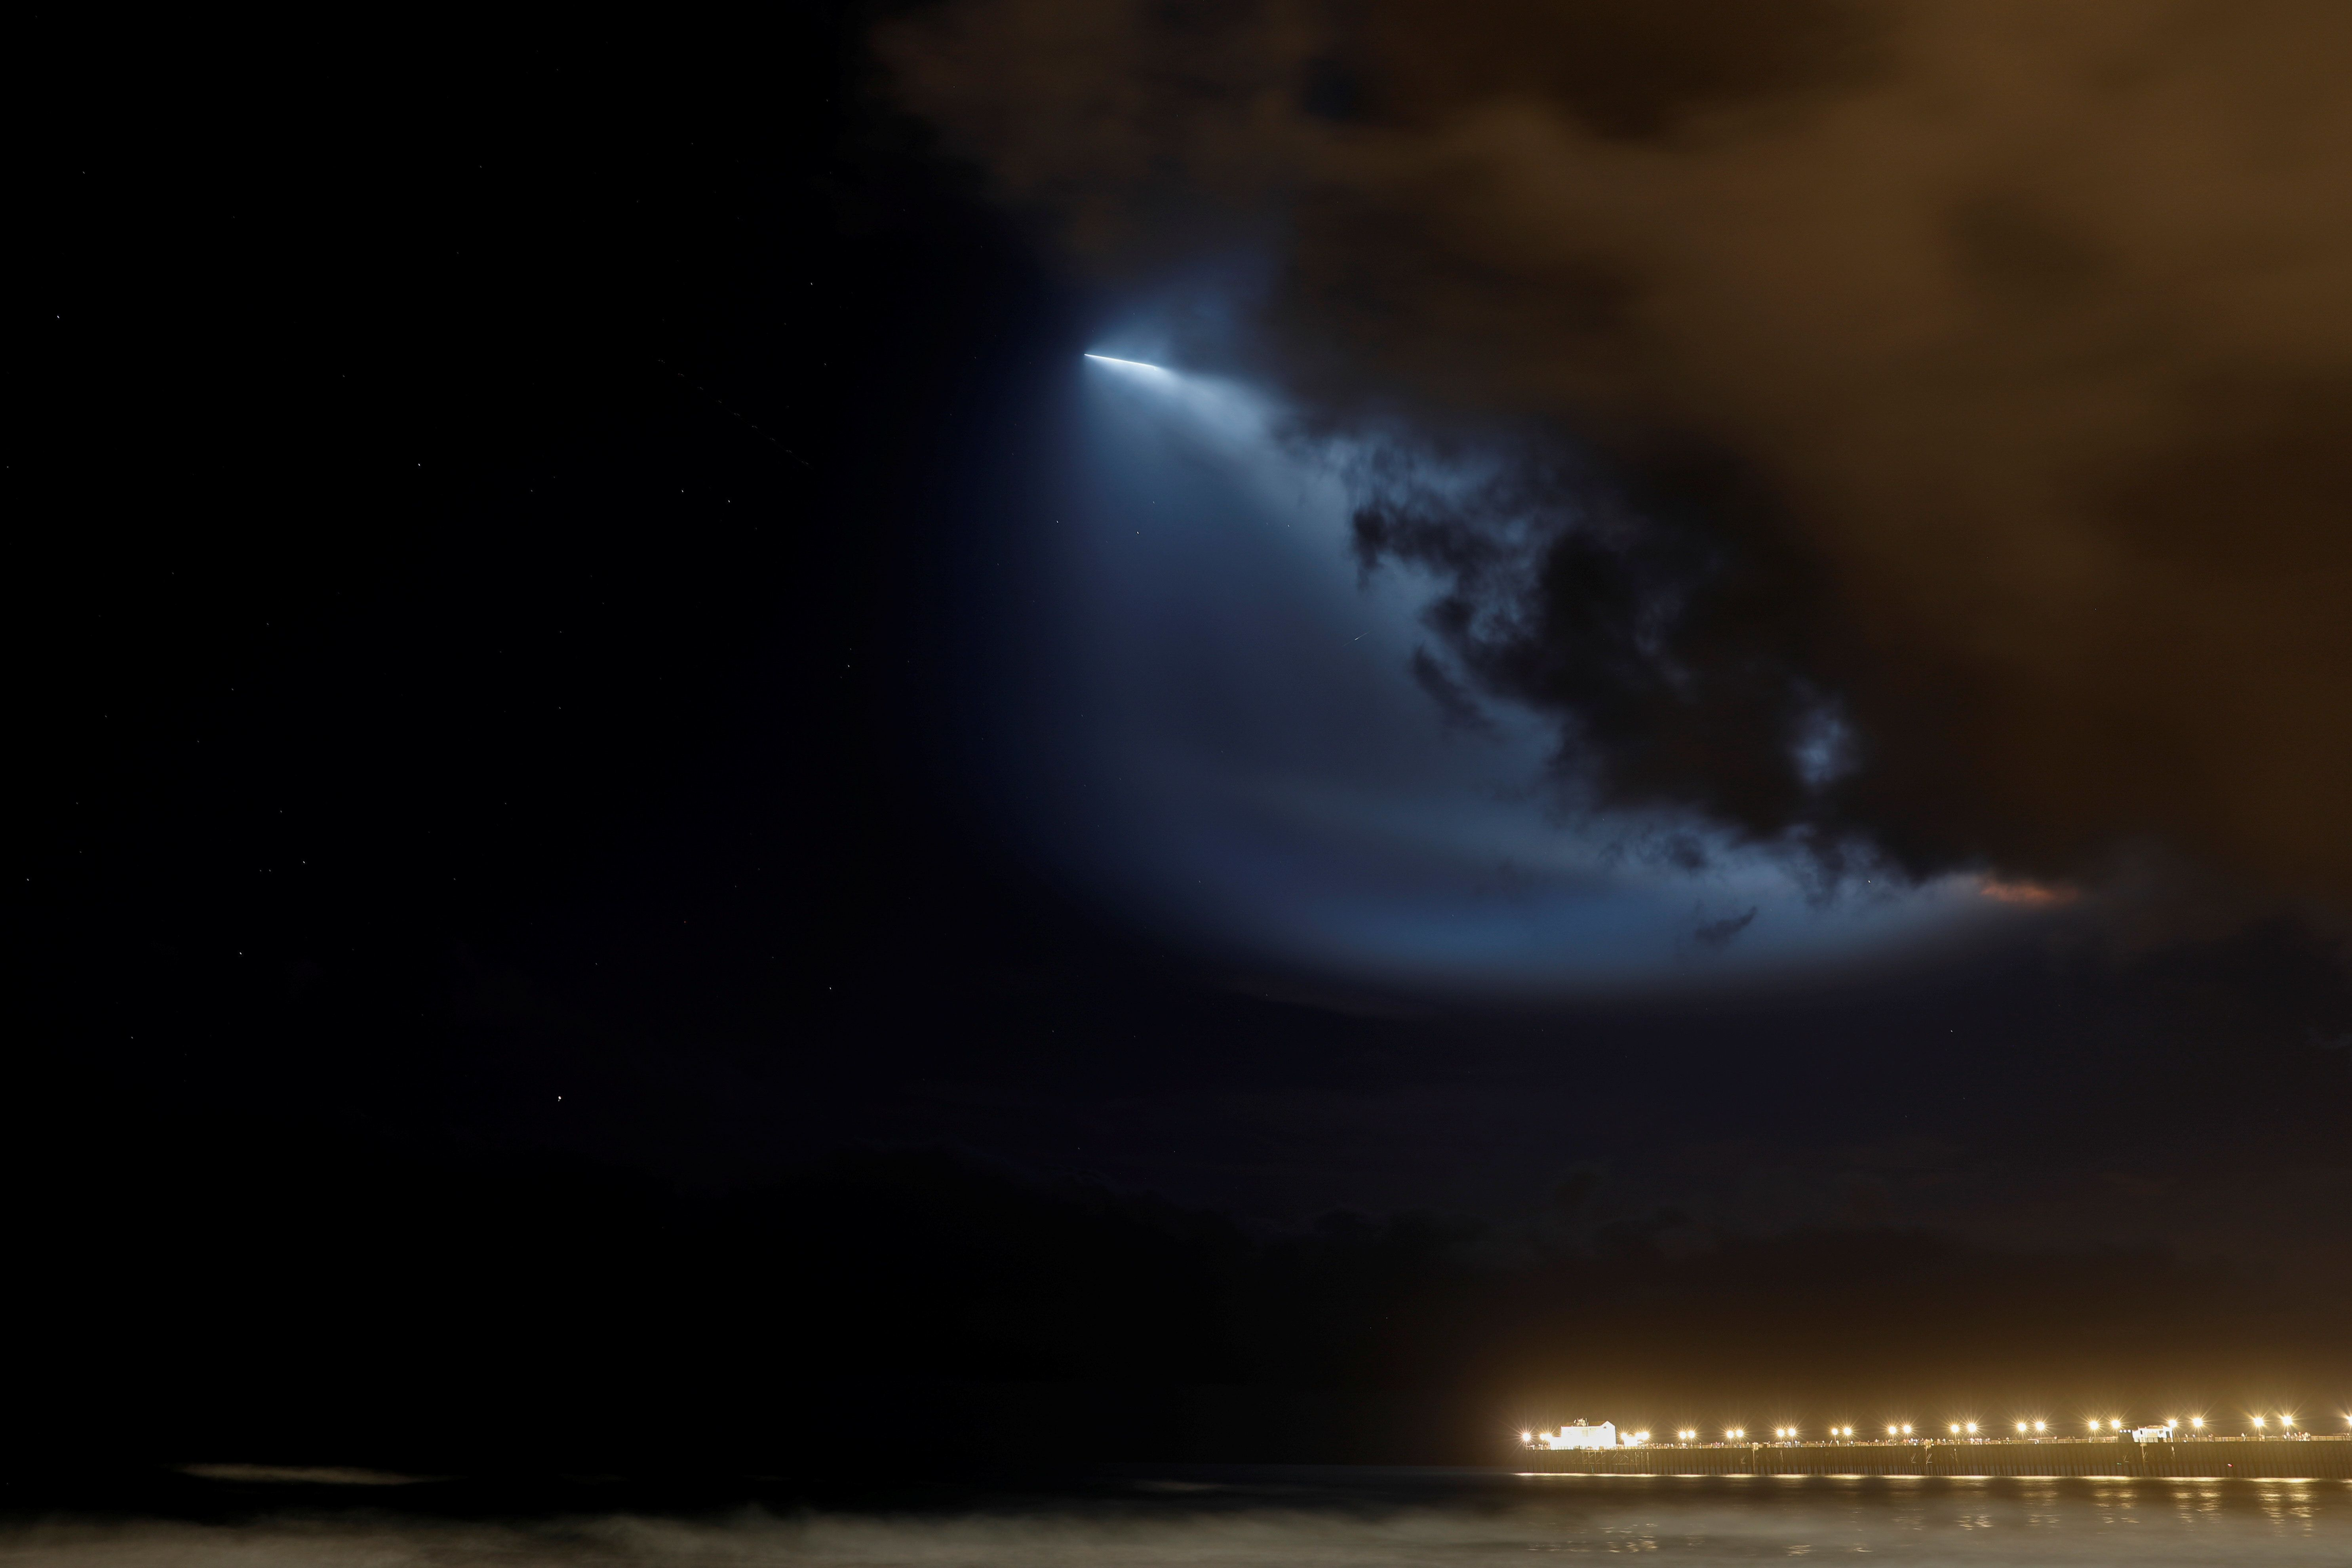 A SpaceX Falcon 9 rocket lights up the evening sky over Oceanside, California as it carries an Argentinian Earth-observing satellite into space after blasting off from Vandenberg Air Force Base, California, U.S., October 7, 2018.     REUTERS/Mike Blake